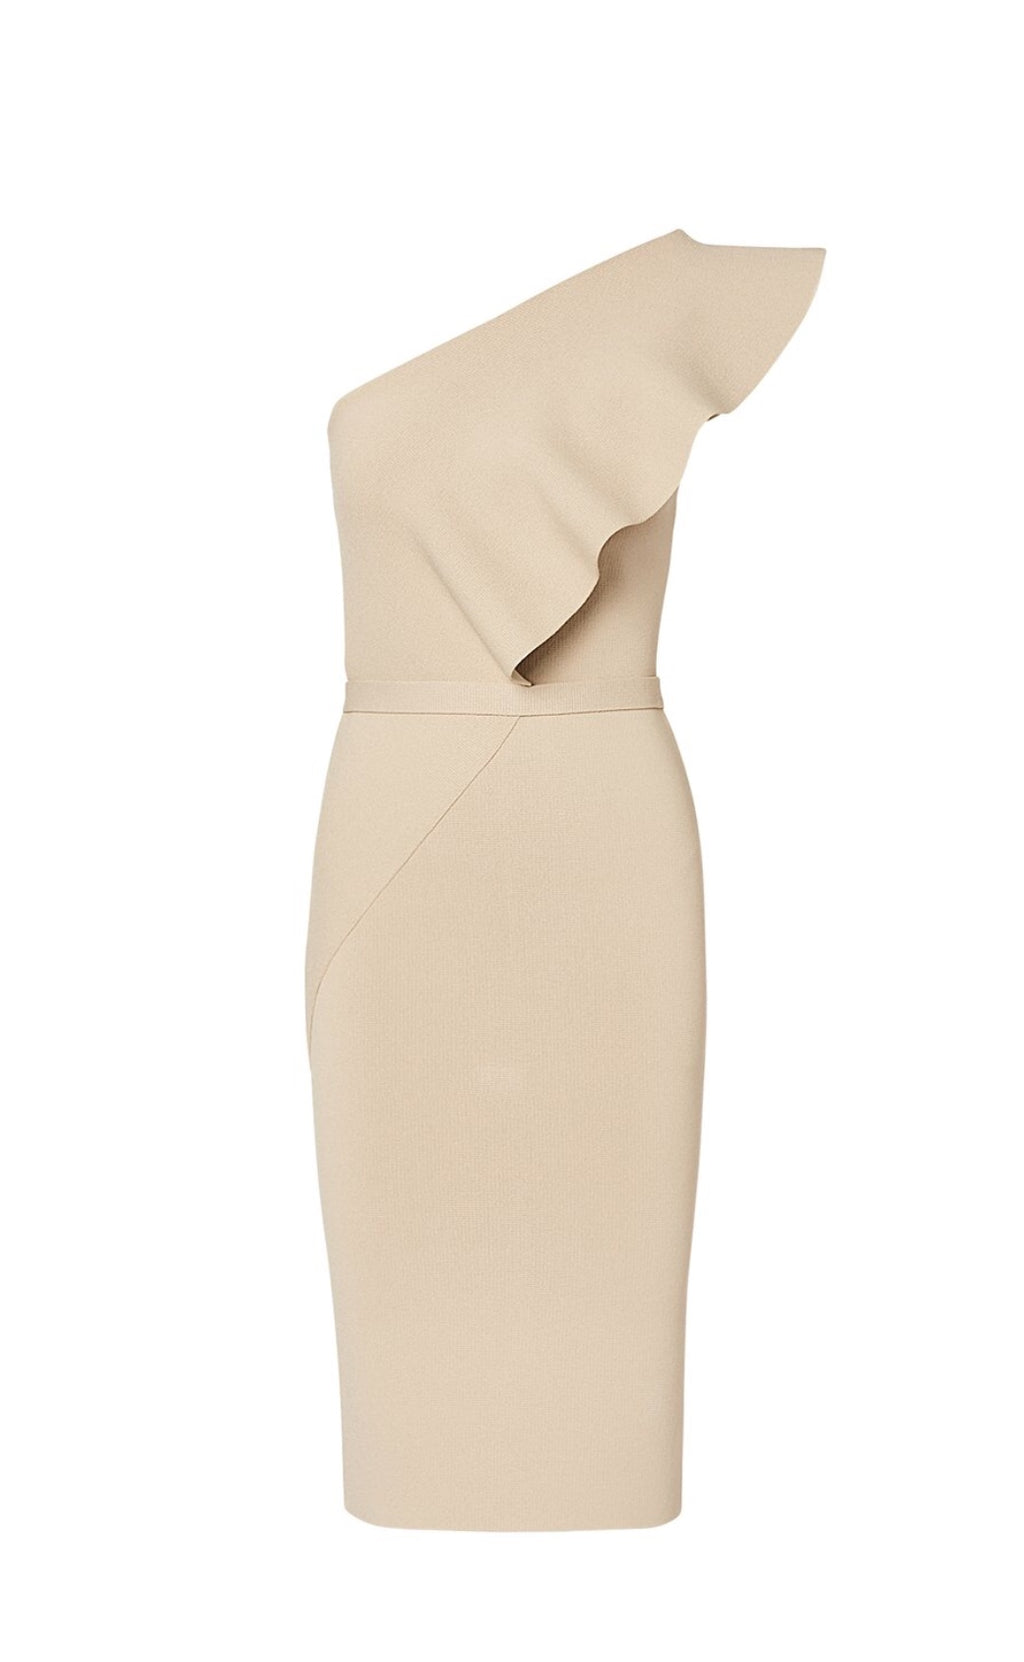 Scanlan Theodore Crepe Knit Ruffle Dress Cream (For Hire)